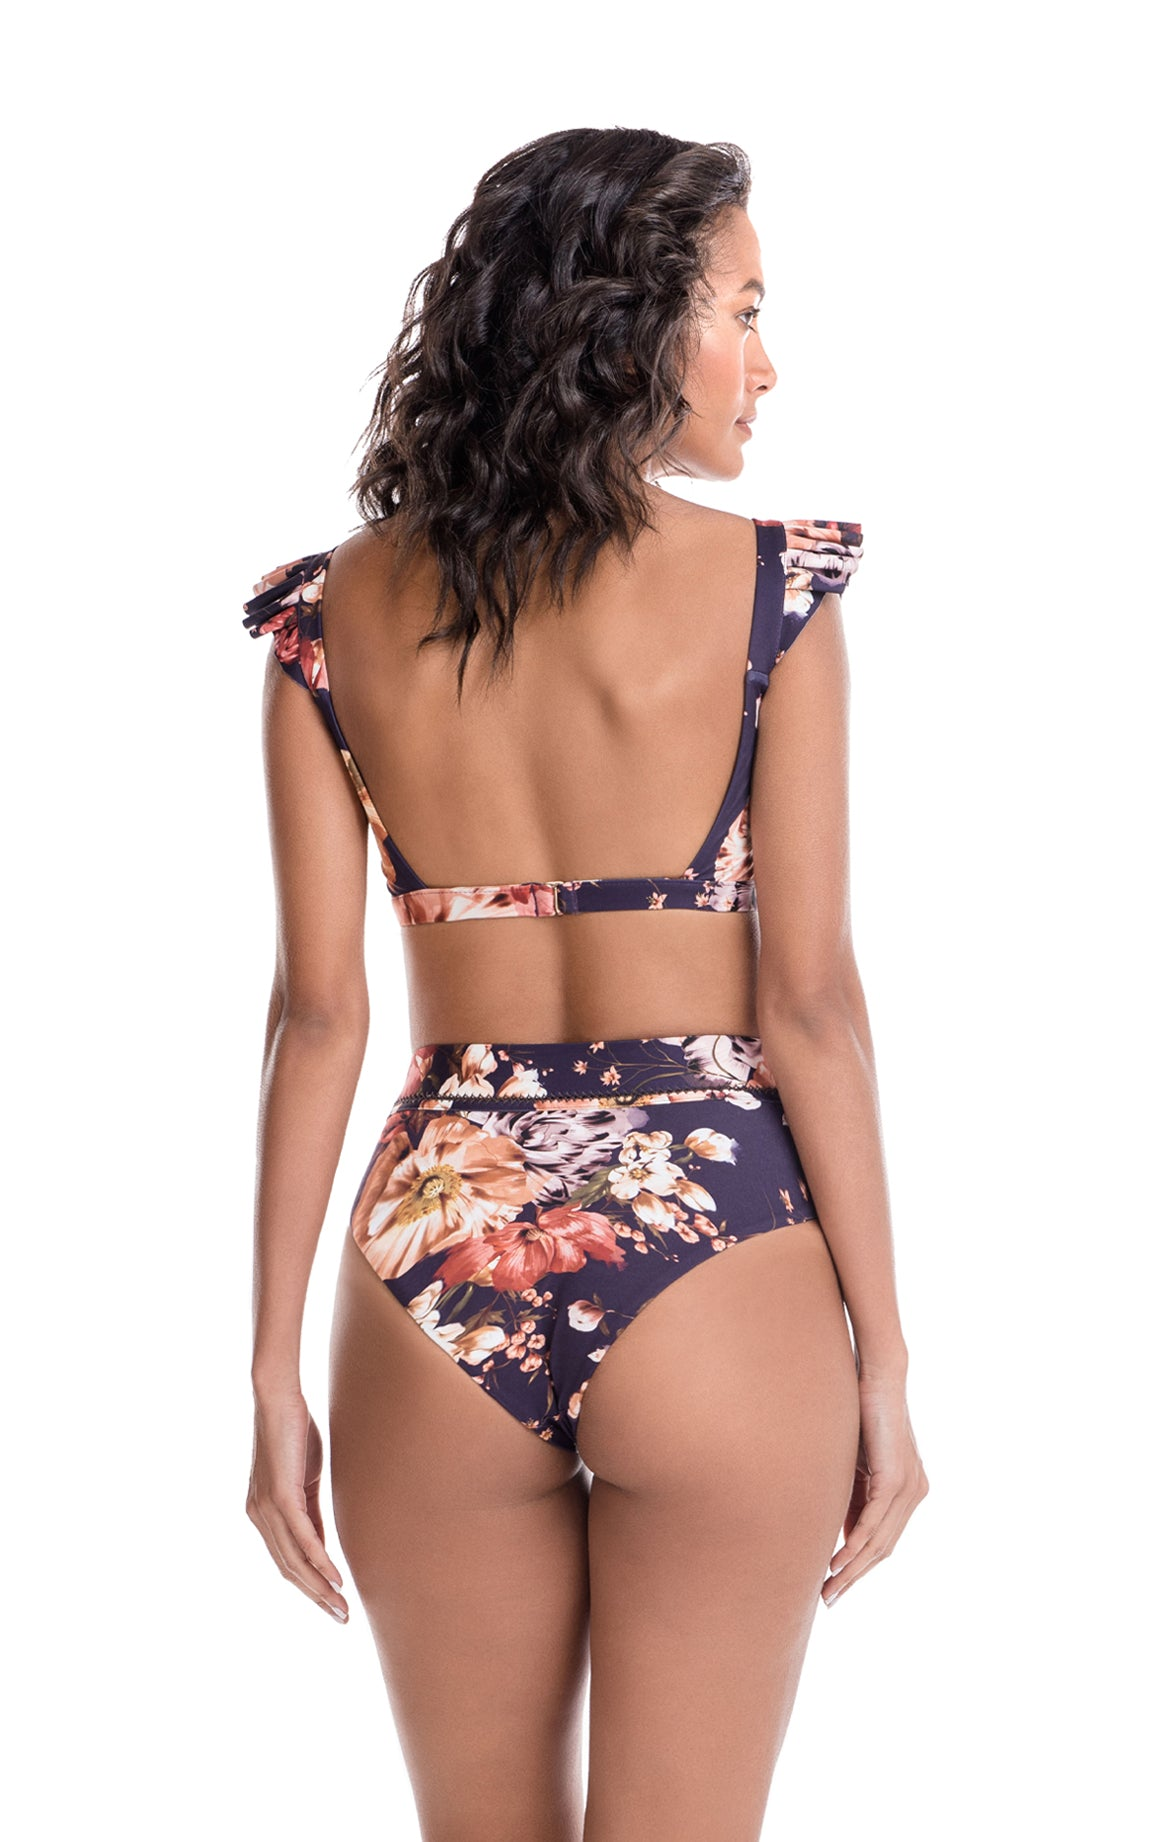 Fiore Belgica High Waist Bottom